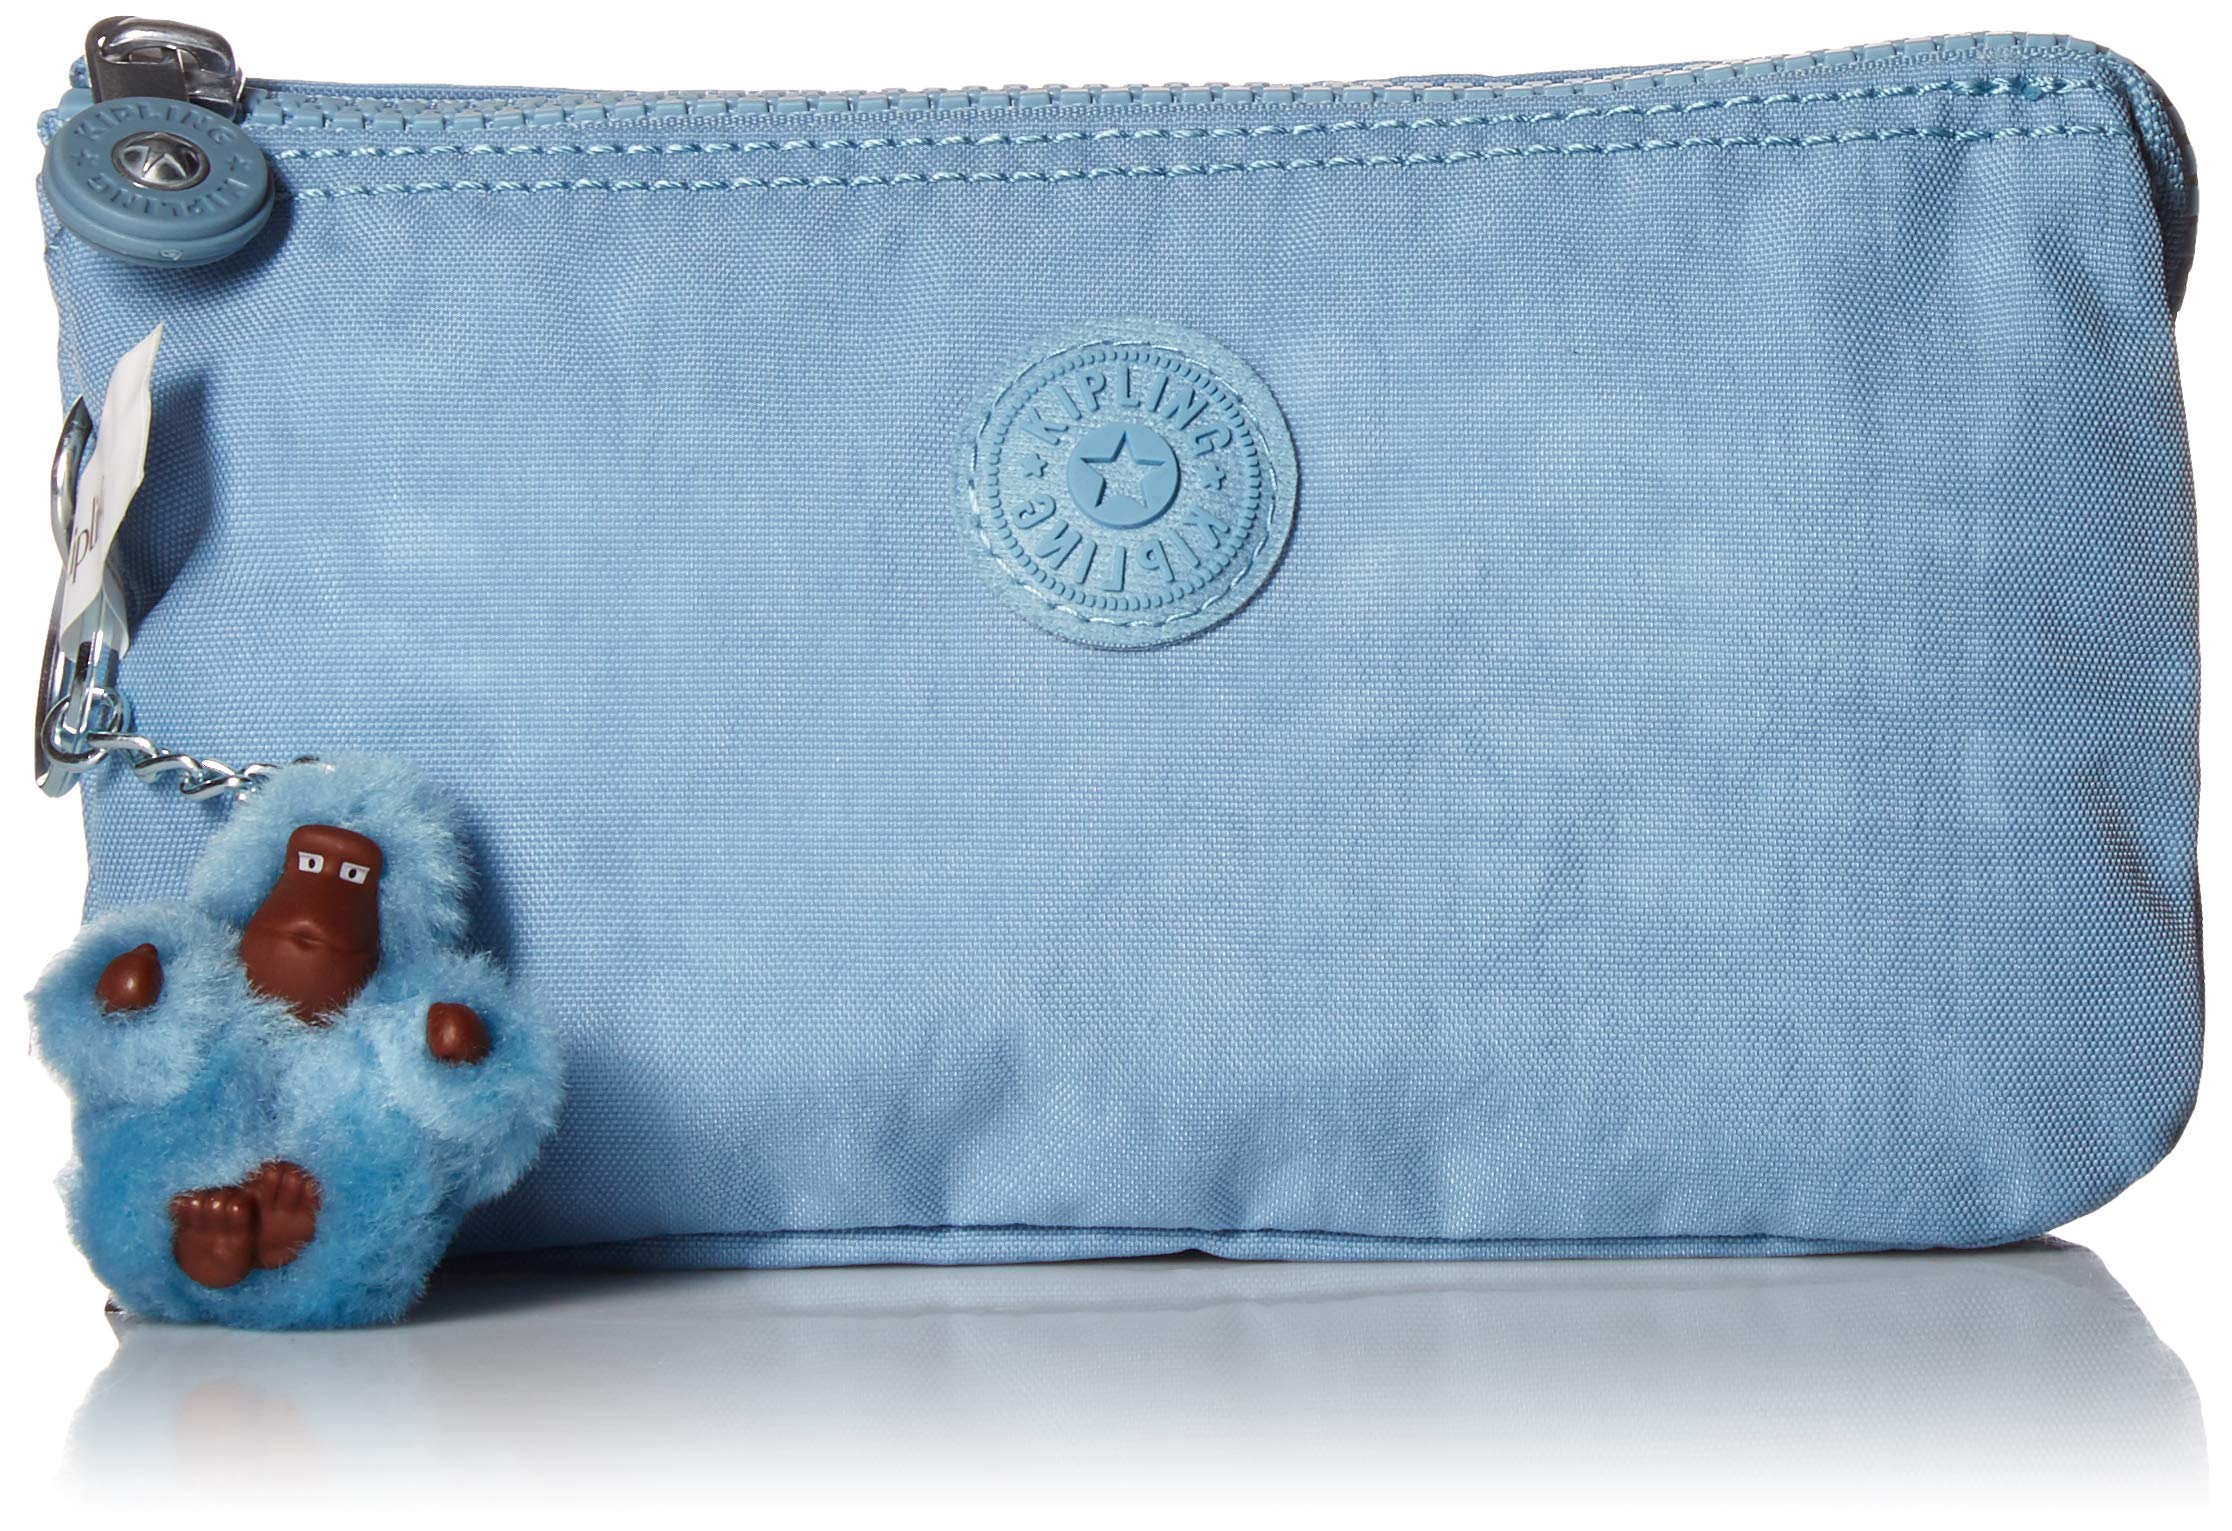 Kipling Women's Creativity Large Pouch, Multi Compartment, Zip Closure, blue beam tonal